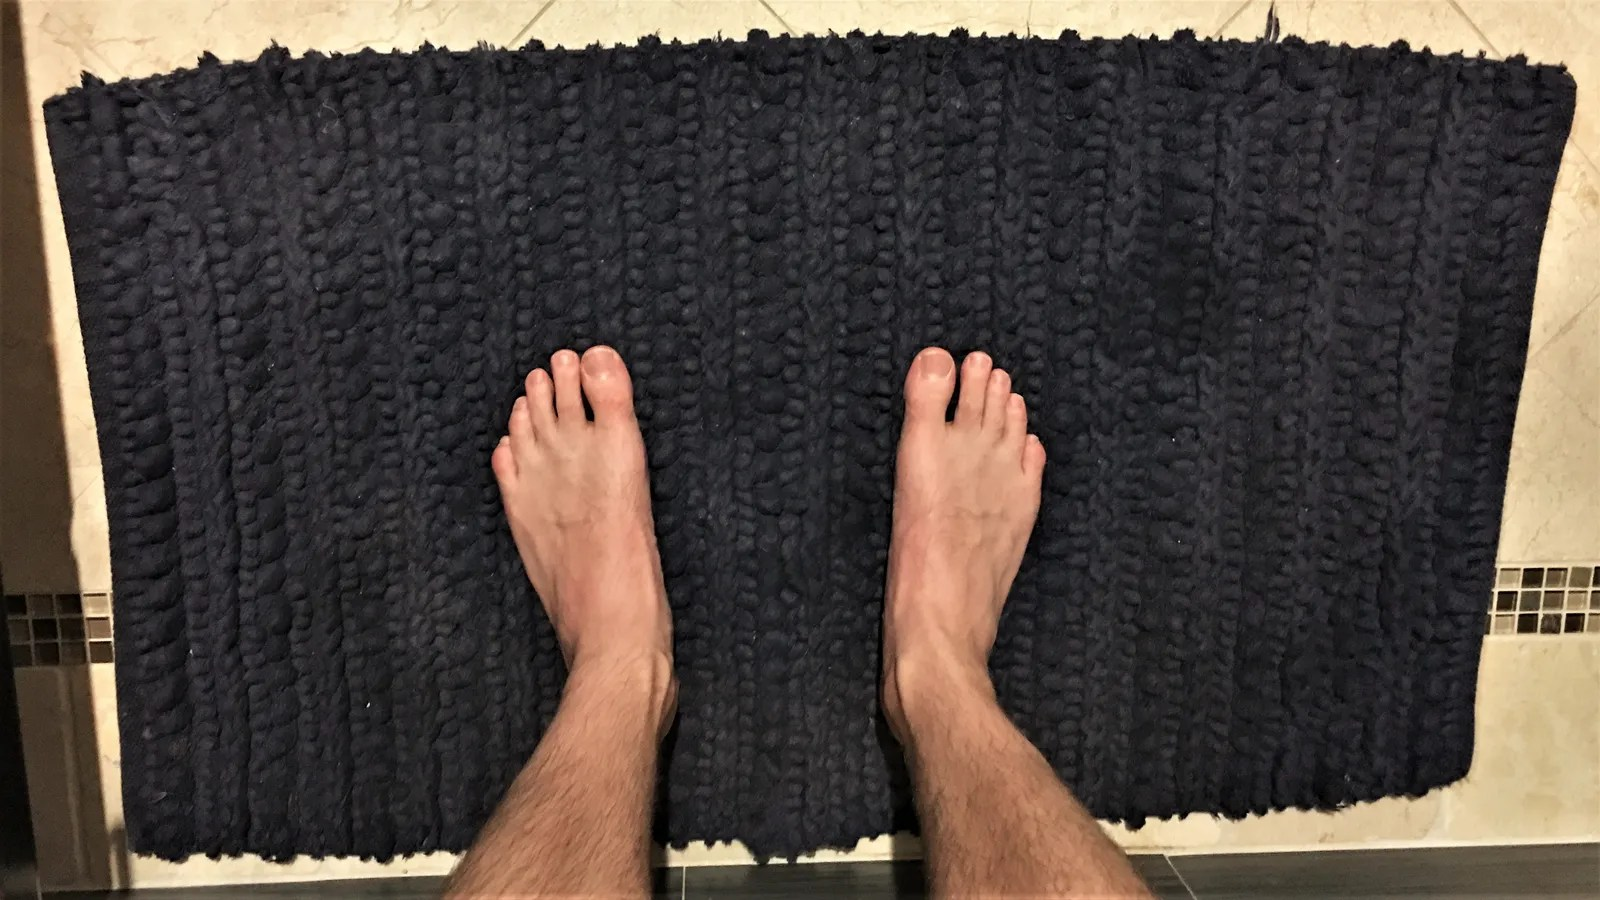 Big W Floor Mat How To Properly Use A Bath Mat